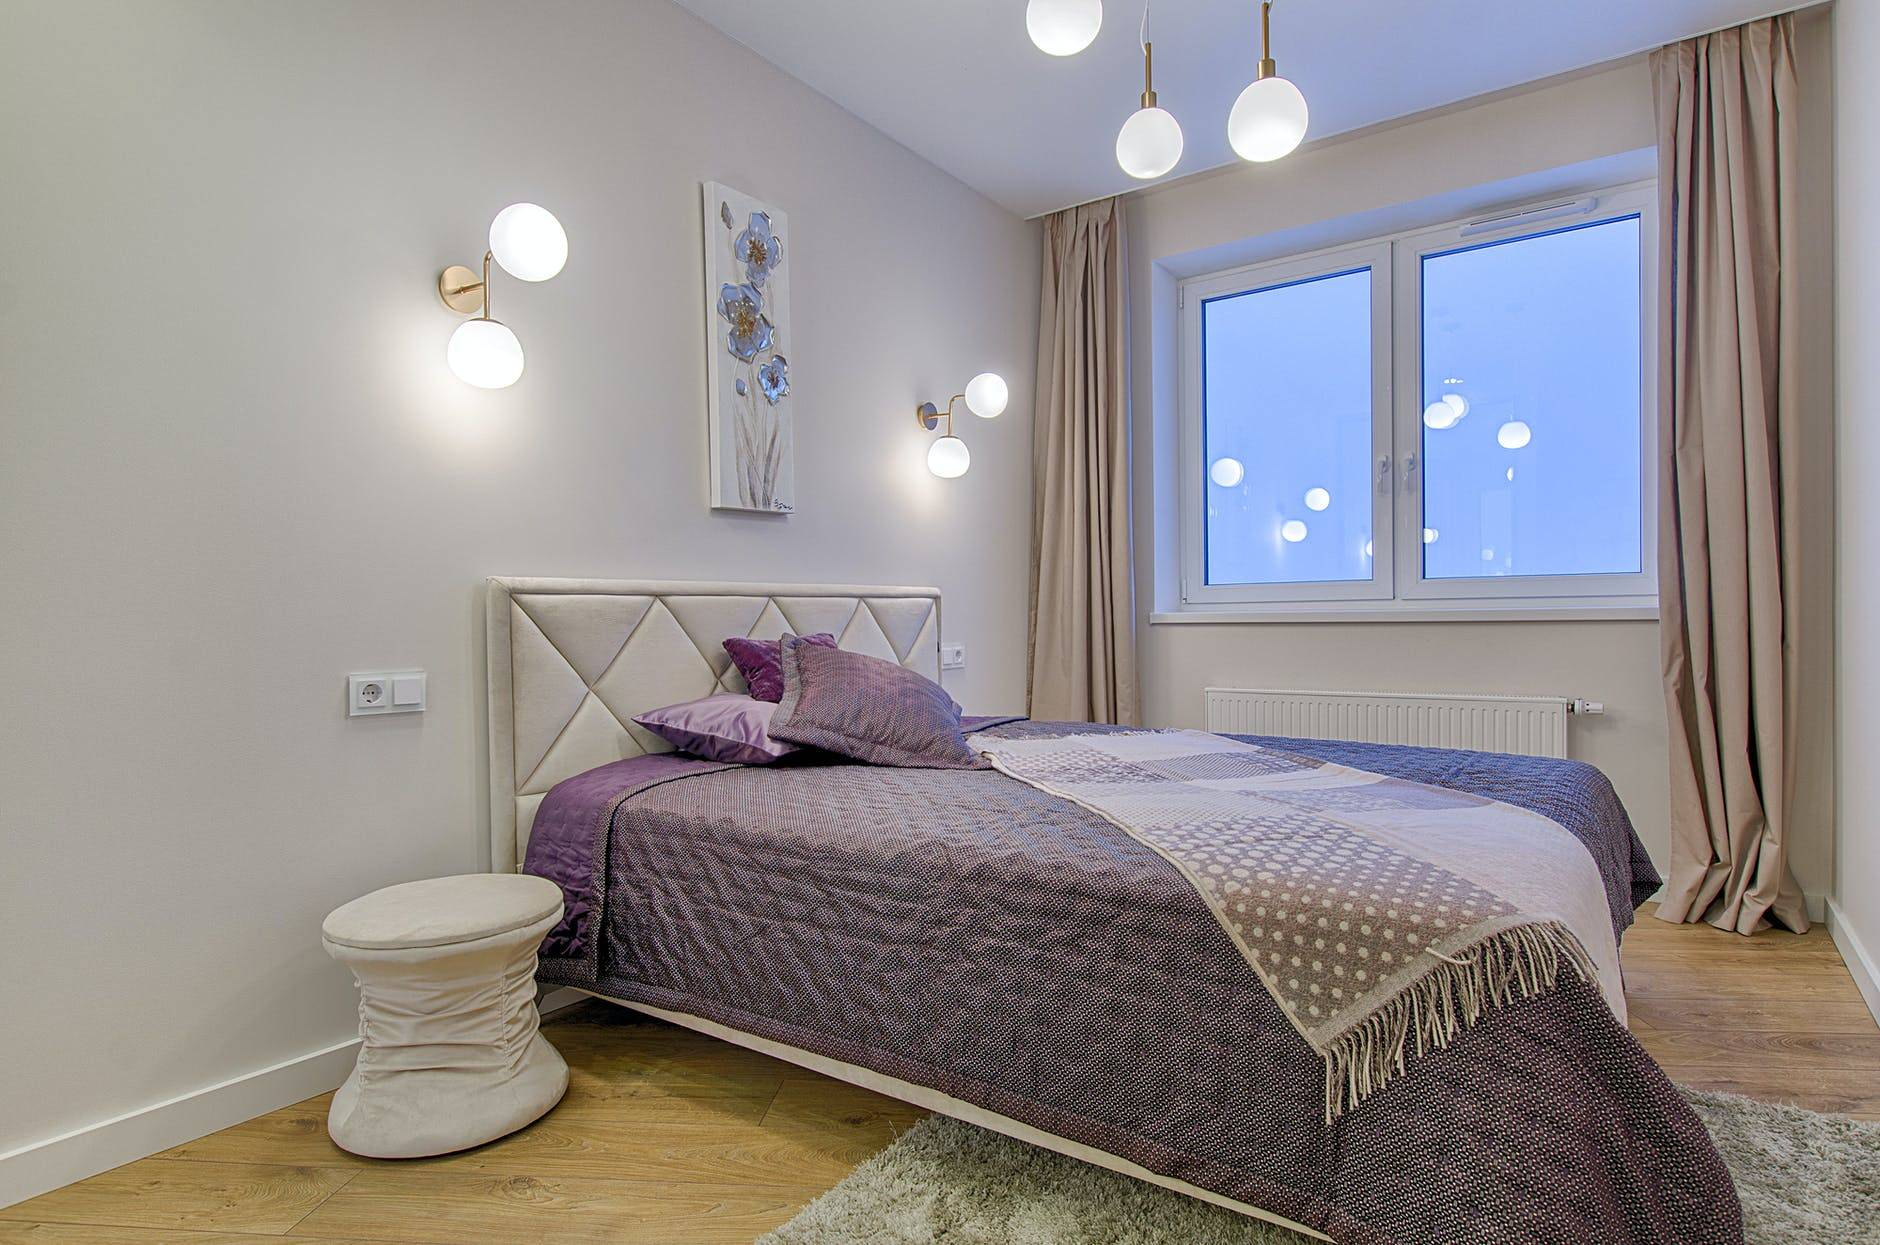 Bed with purple sheets and cushions